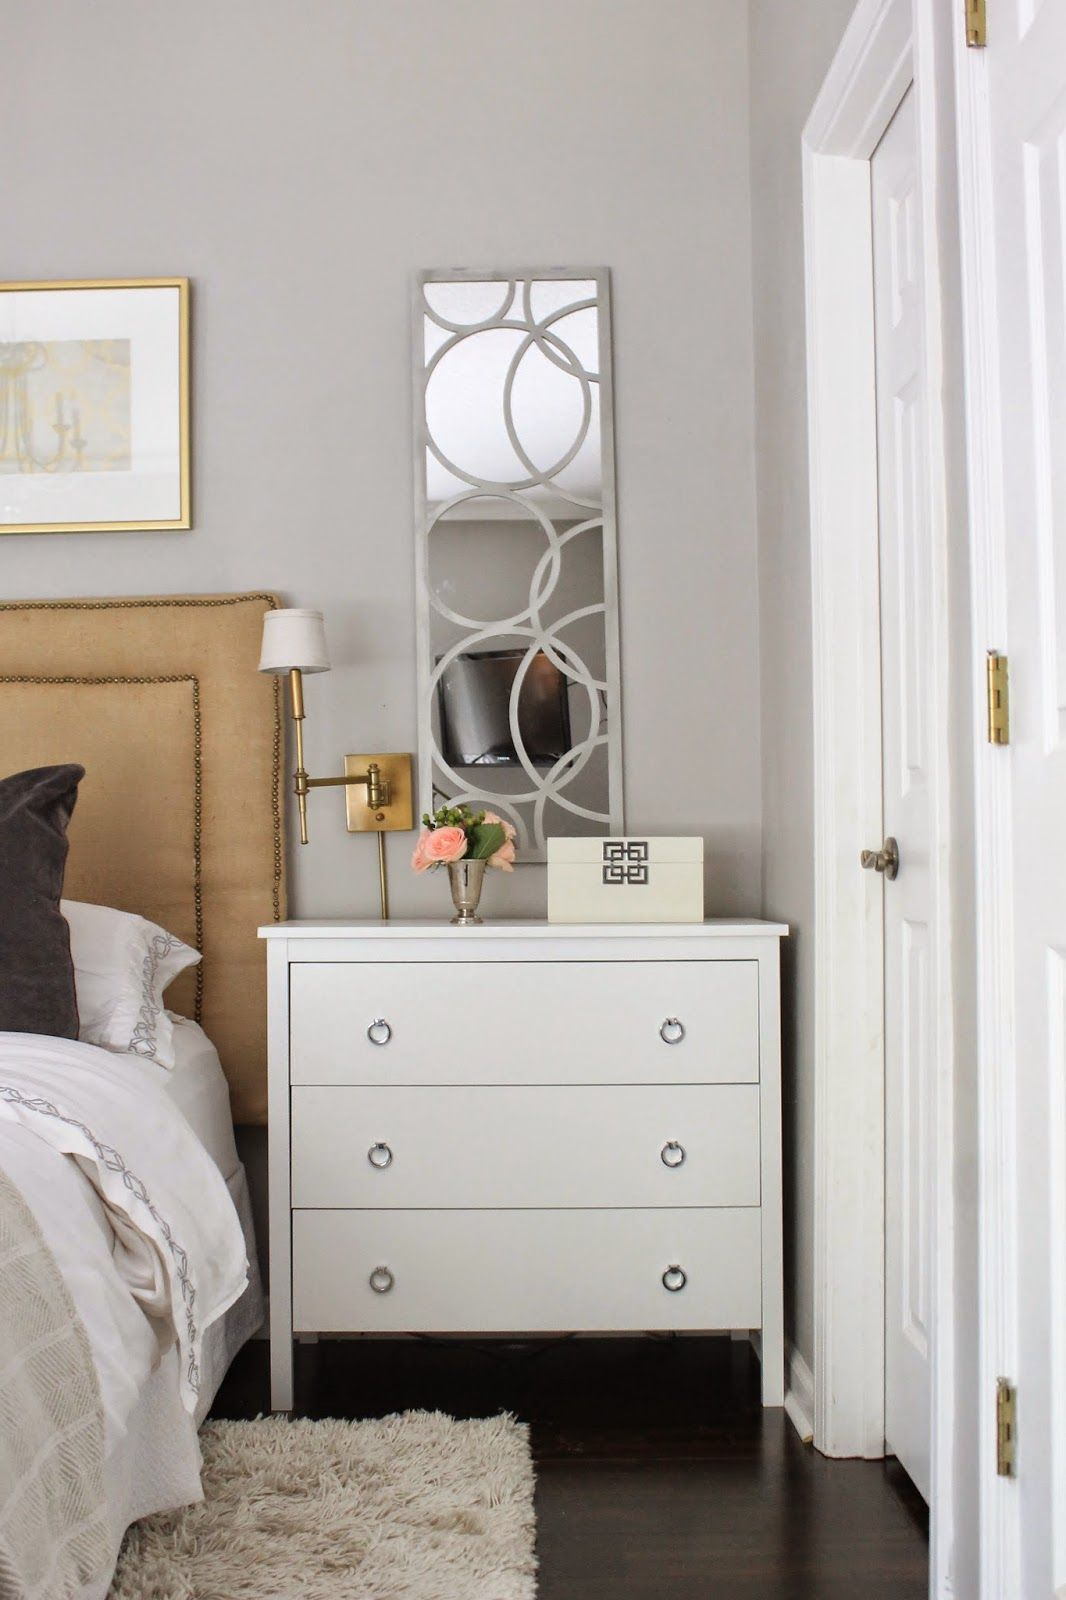 hot sale online 20e17 c59b2 IKEA Koppang dresser | Home{BEDROOM} in 2019 | Bedroom night ...